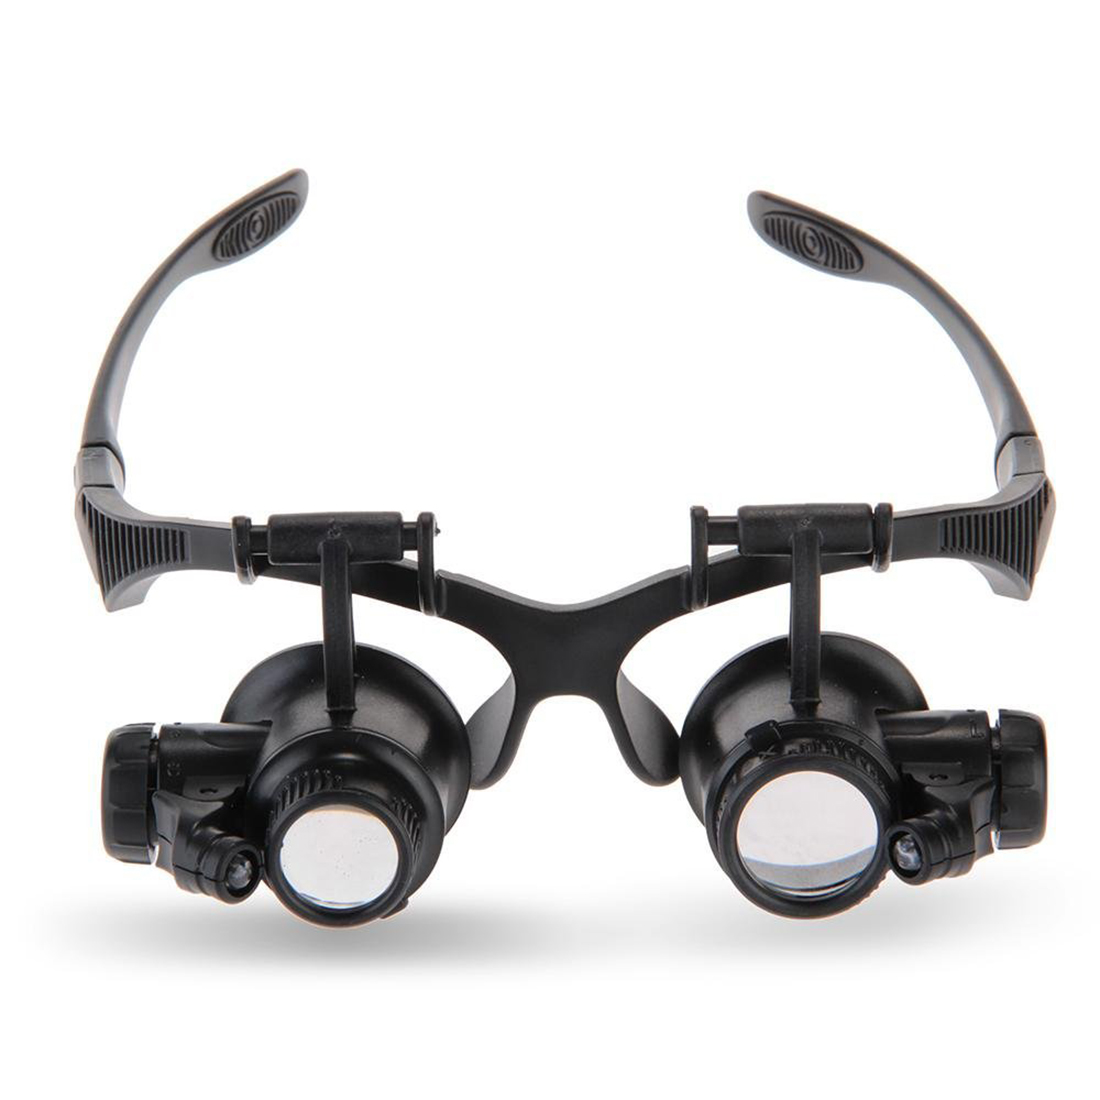 Magnifying Glass Headband Eyewear Jewelry <font><b>Watch</b></font> <font><b>Repair</b></font> <font><b>Magnifier</b></font> Glasses <font><b>With</b></font> <font><b>2</b></font> <font><b>LED</b></font> Lights New Loupe Microscope <font><b>10X</b></font> <font><b>15X</b></font> <font><b>20X</b></font> <font><b>25X</b></font> image